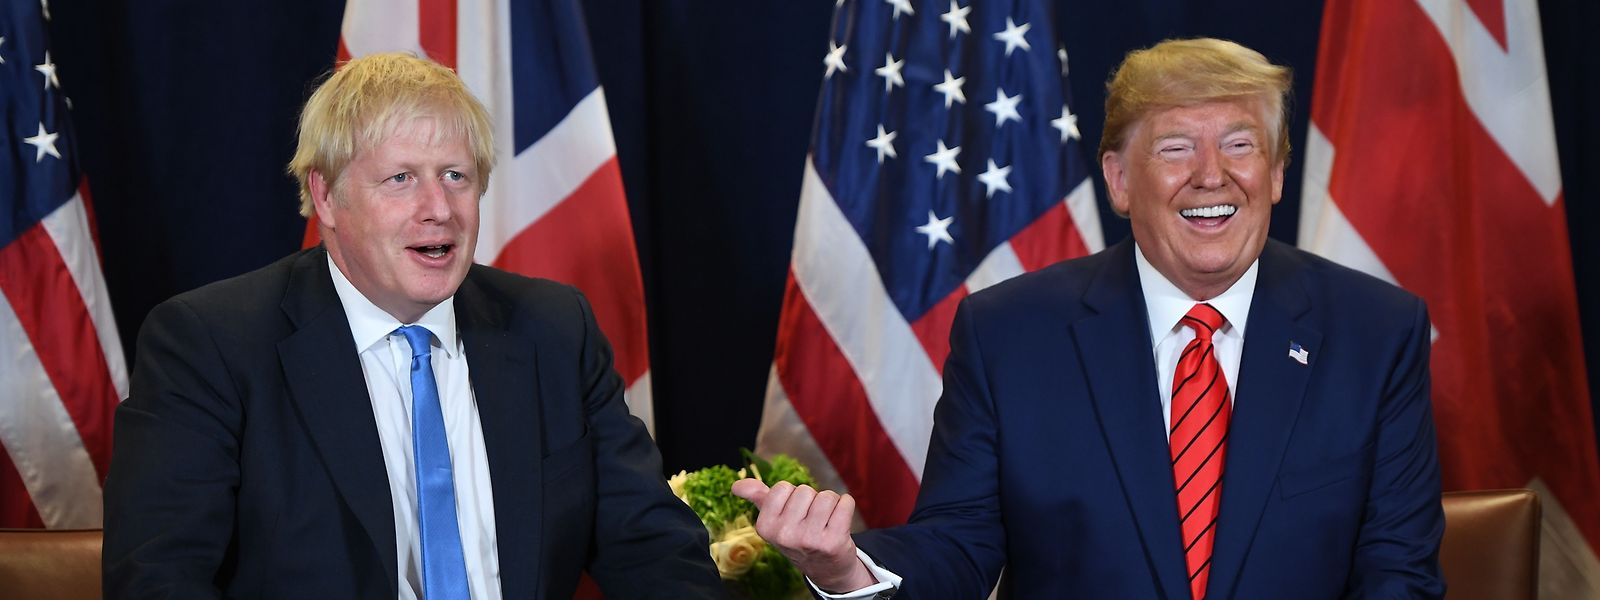 24. September 2019: Boris Johnson und Donald Trump treffen sich im UN-Hauptquartier in New York.